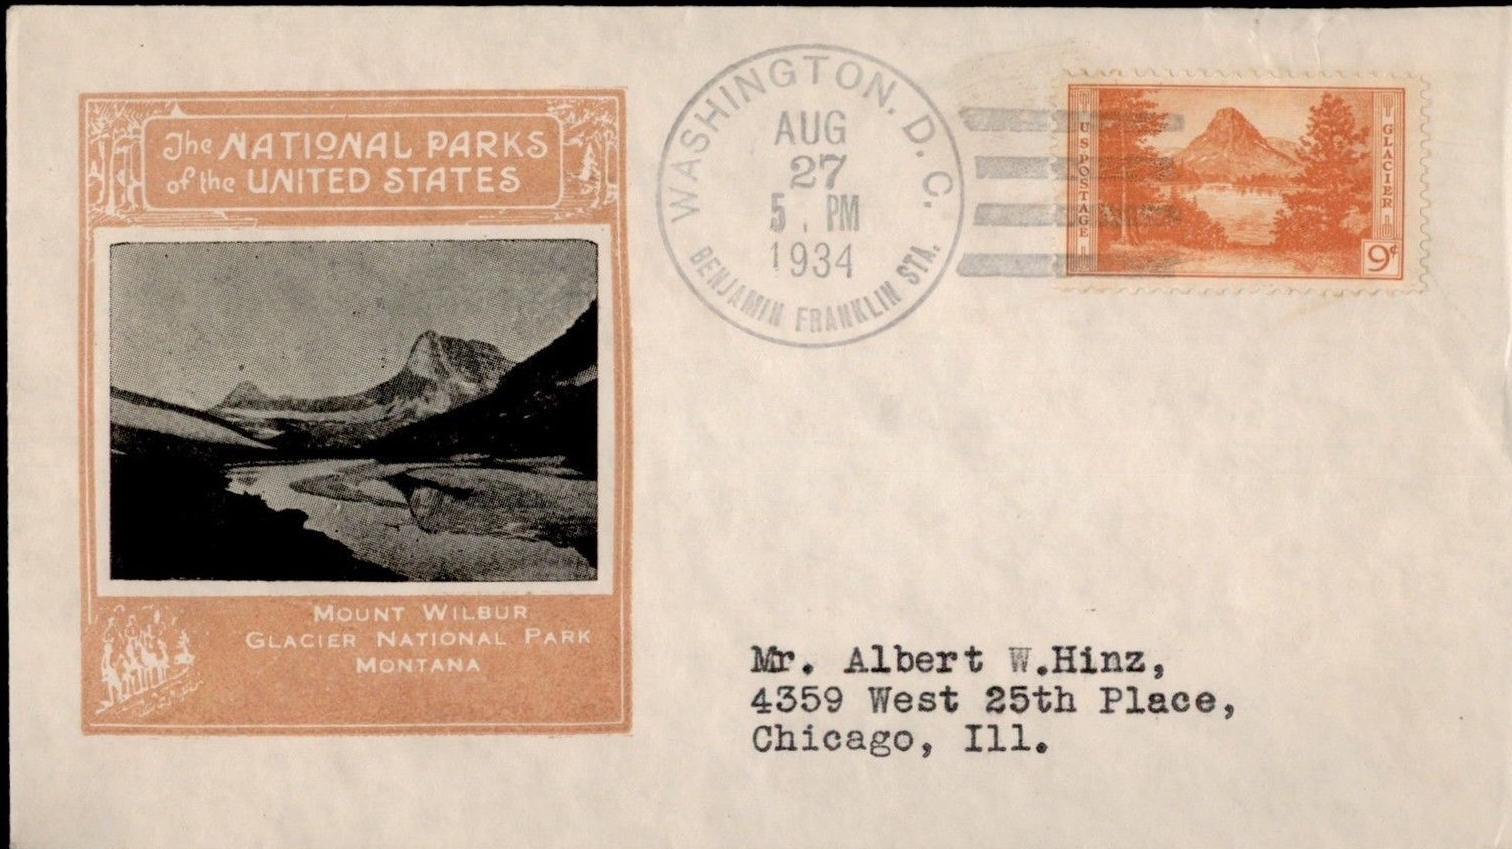 United States - Scott #748 (1934) first day cover cancelled at Benjamin Franklin Station, Washington, D.C.